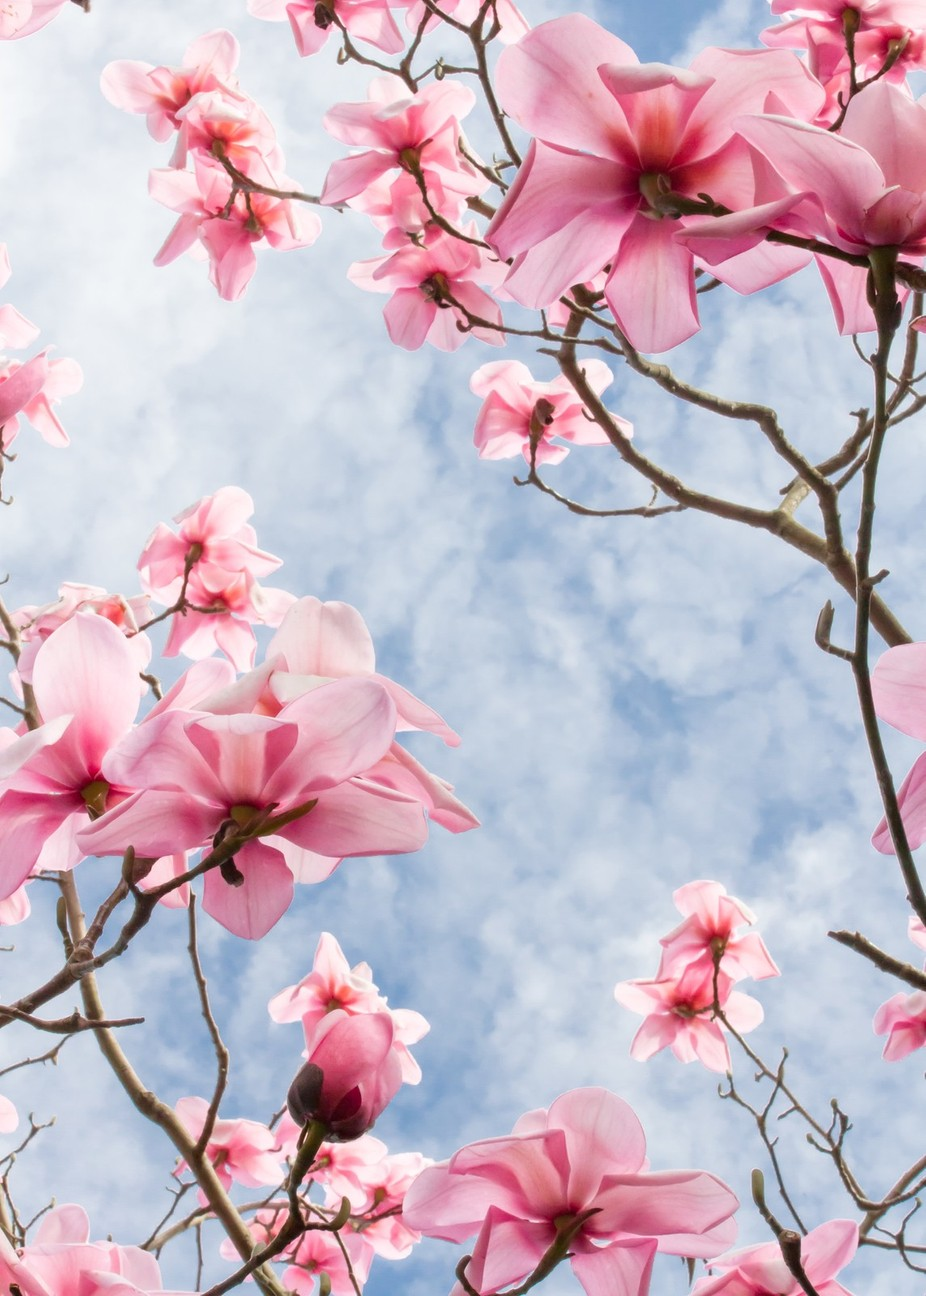 Magnolia Sky by Weglet - Pink Photo Contest